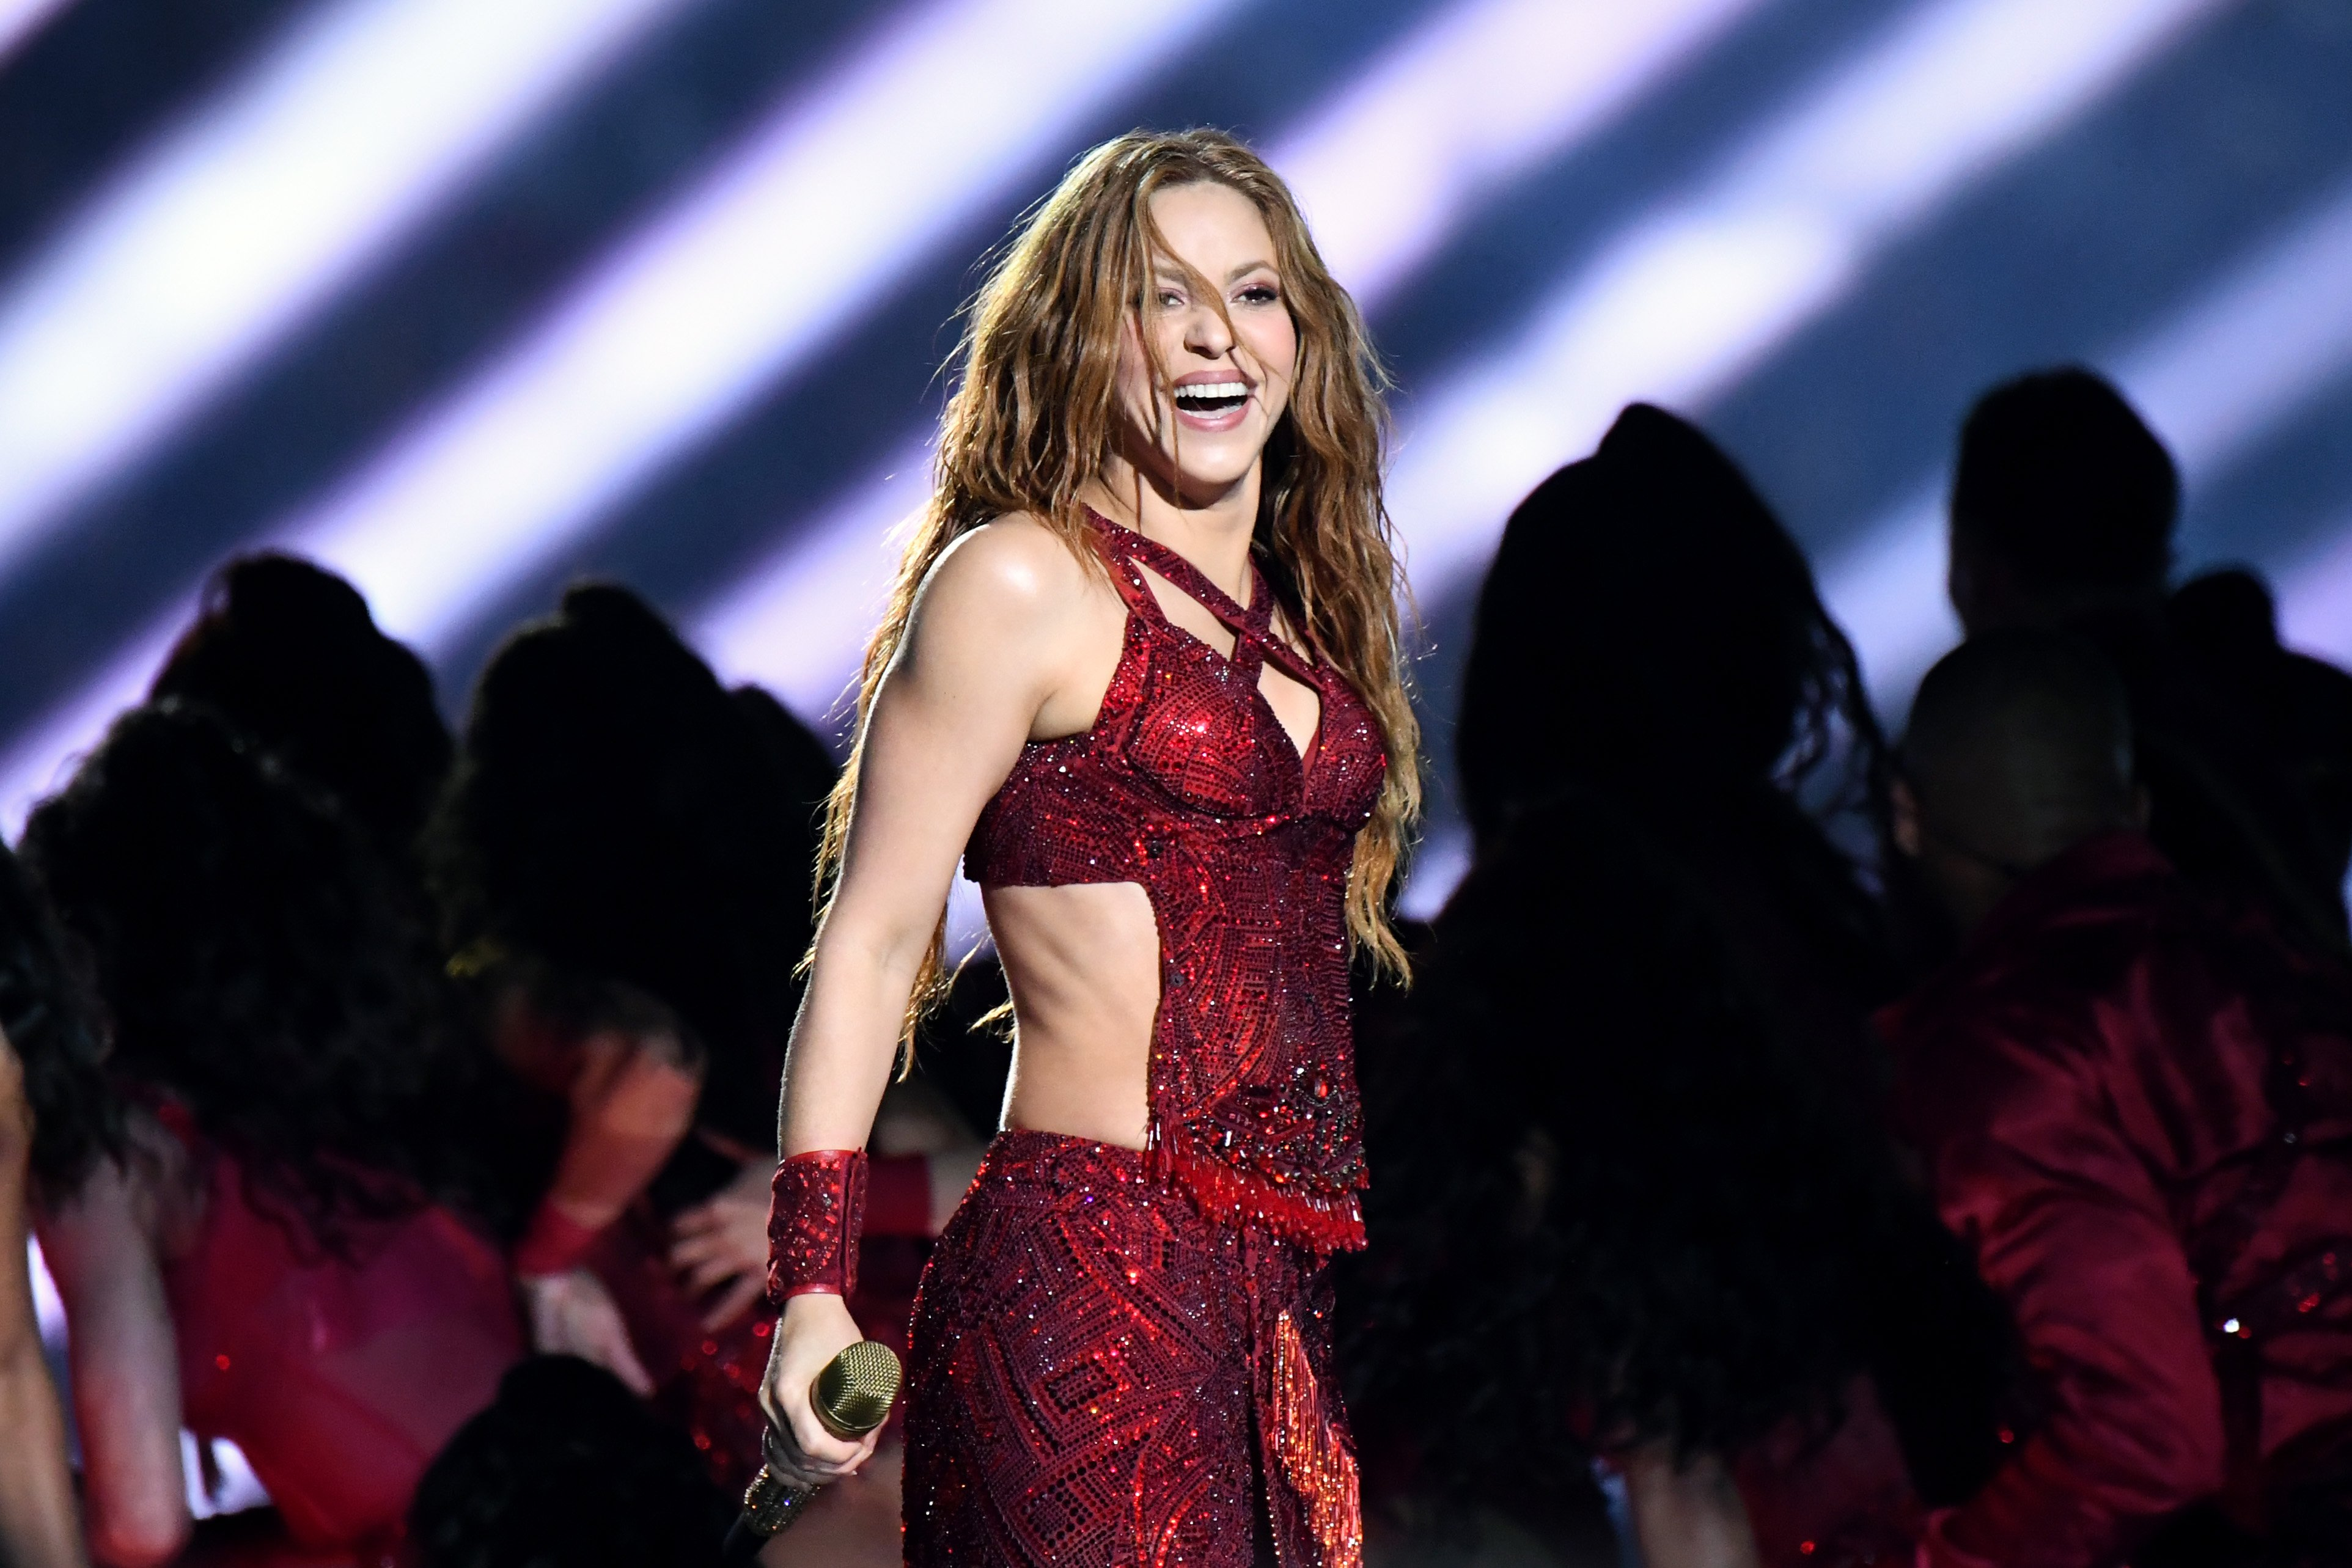 Image Credit: Getty Images / Shakira performing at the Super Bowl LIV Halftime Show.